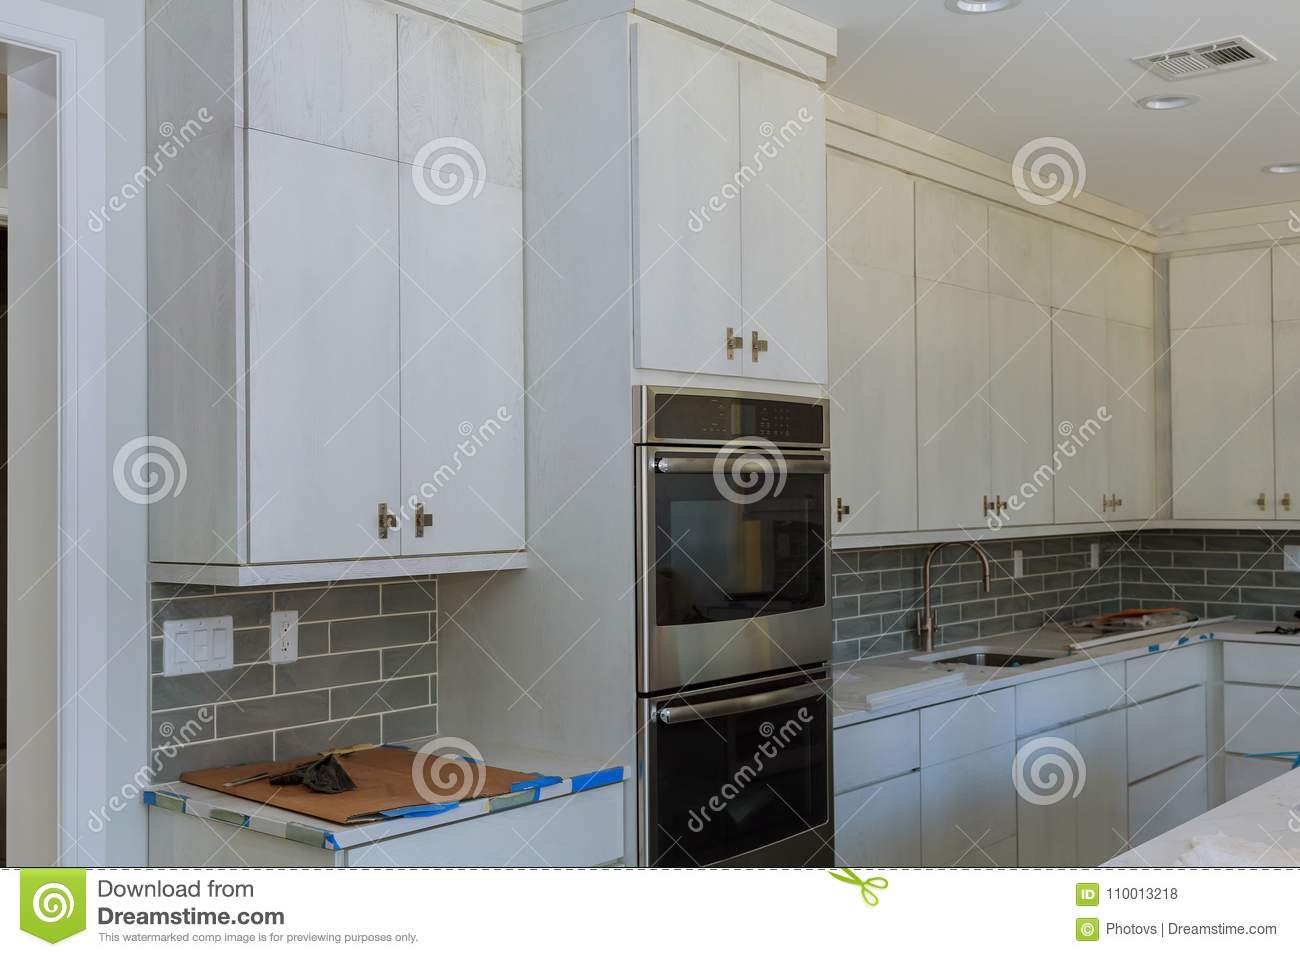 Kitchen Cabinets Installation Island Drawers And Counter ...